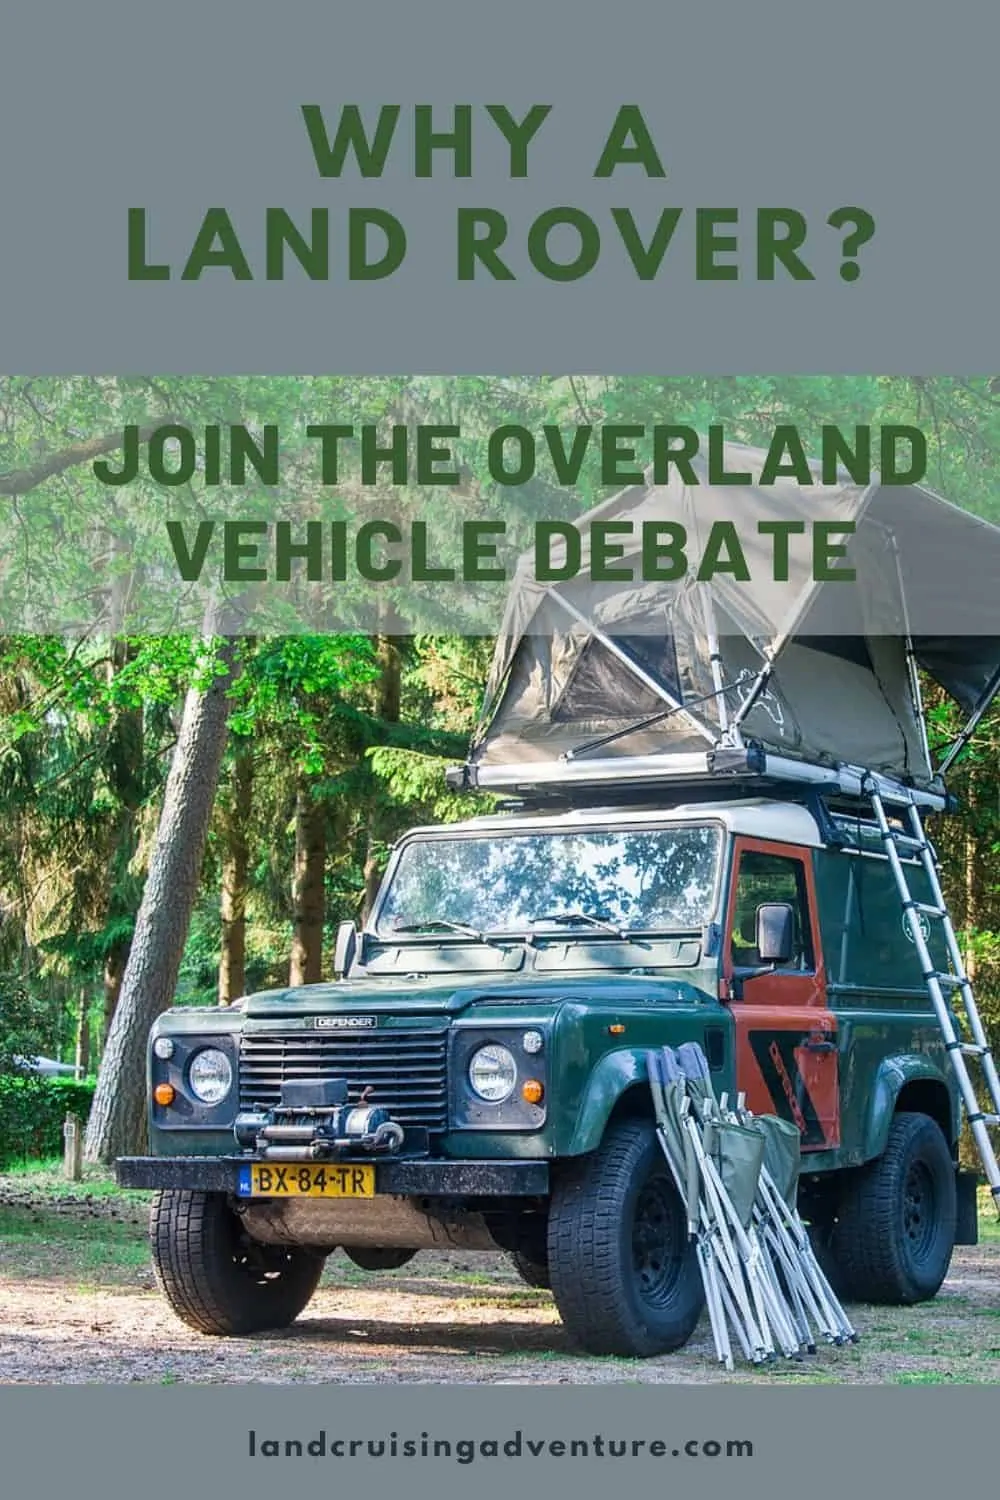 Land Rover Vs Land Cruiser Part 1 The Land Rover Aficionados Land Cruiser Parts Land Rover Land Cruiser